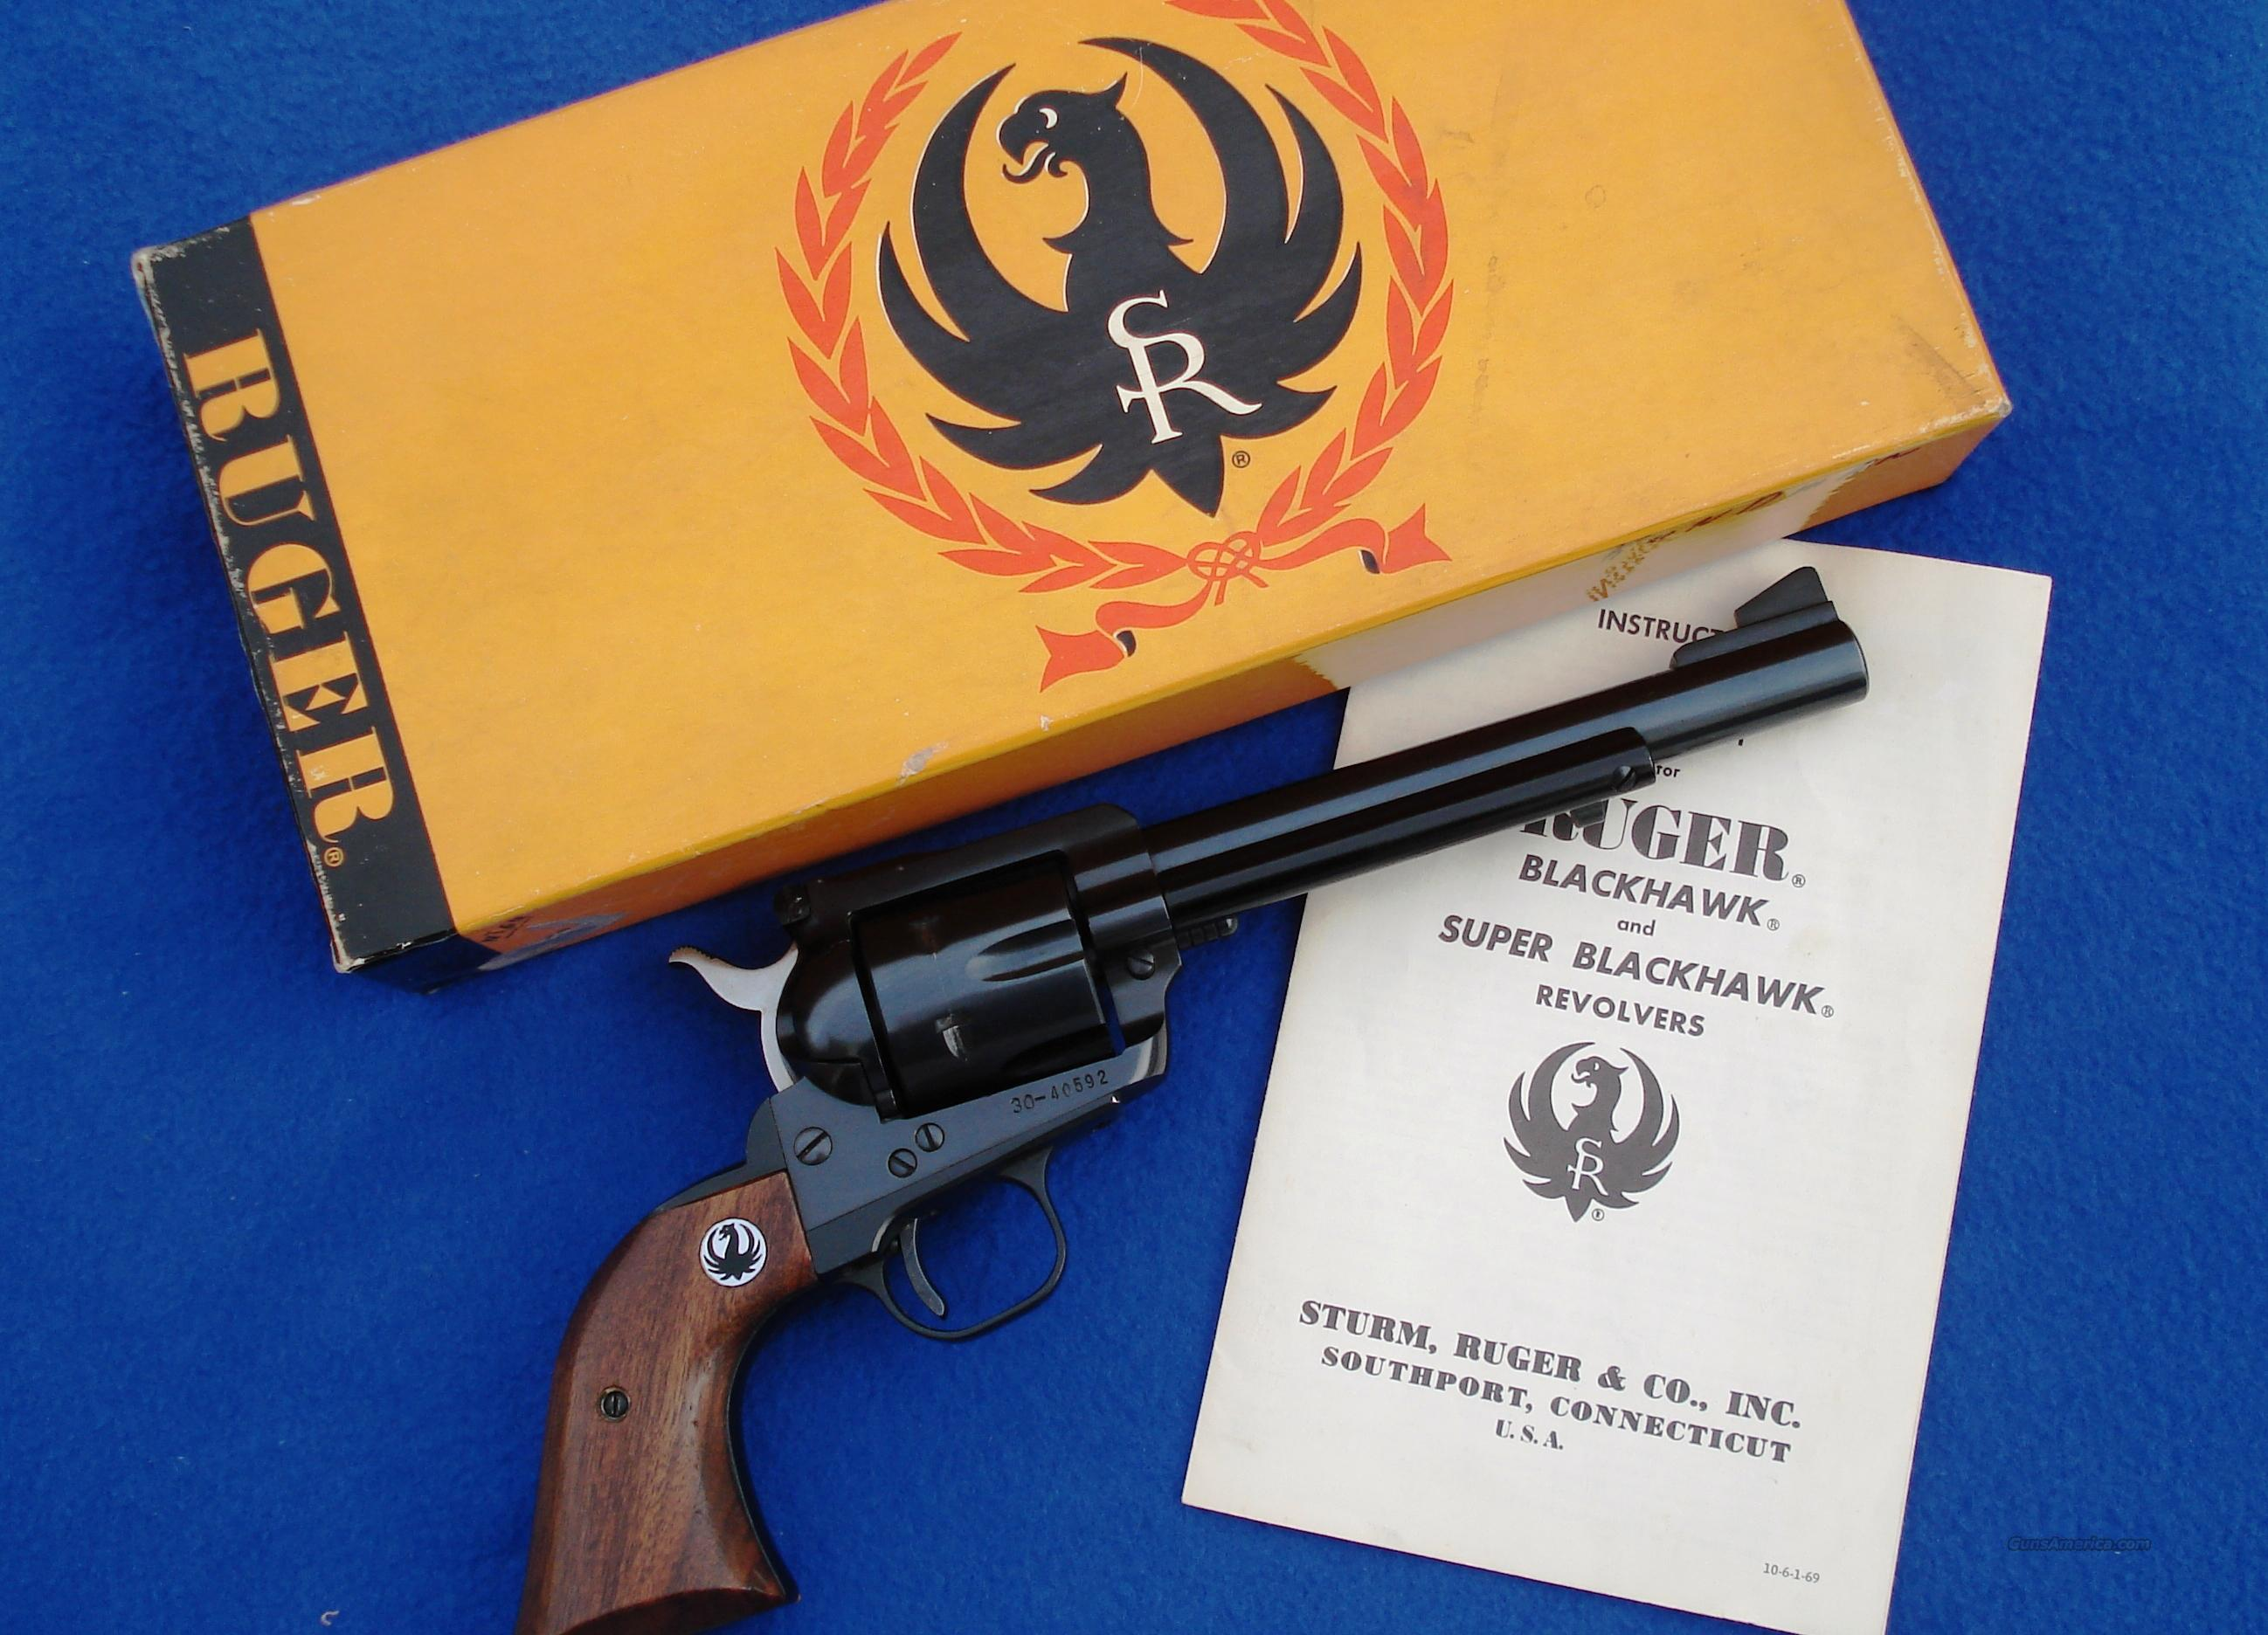 Ruger Blackhawk 3 Screw .357 Old Model, w/Box and Manual  Guns > Pistols > Ruger Single Action Revolvers > Blackhawk Type